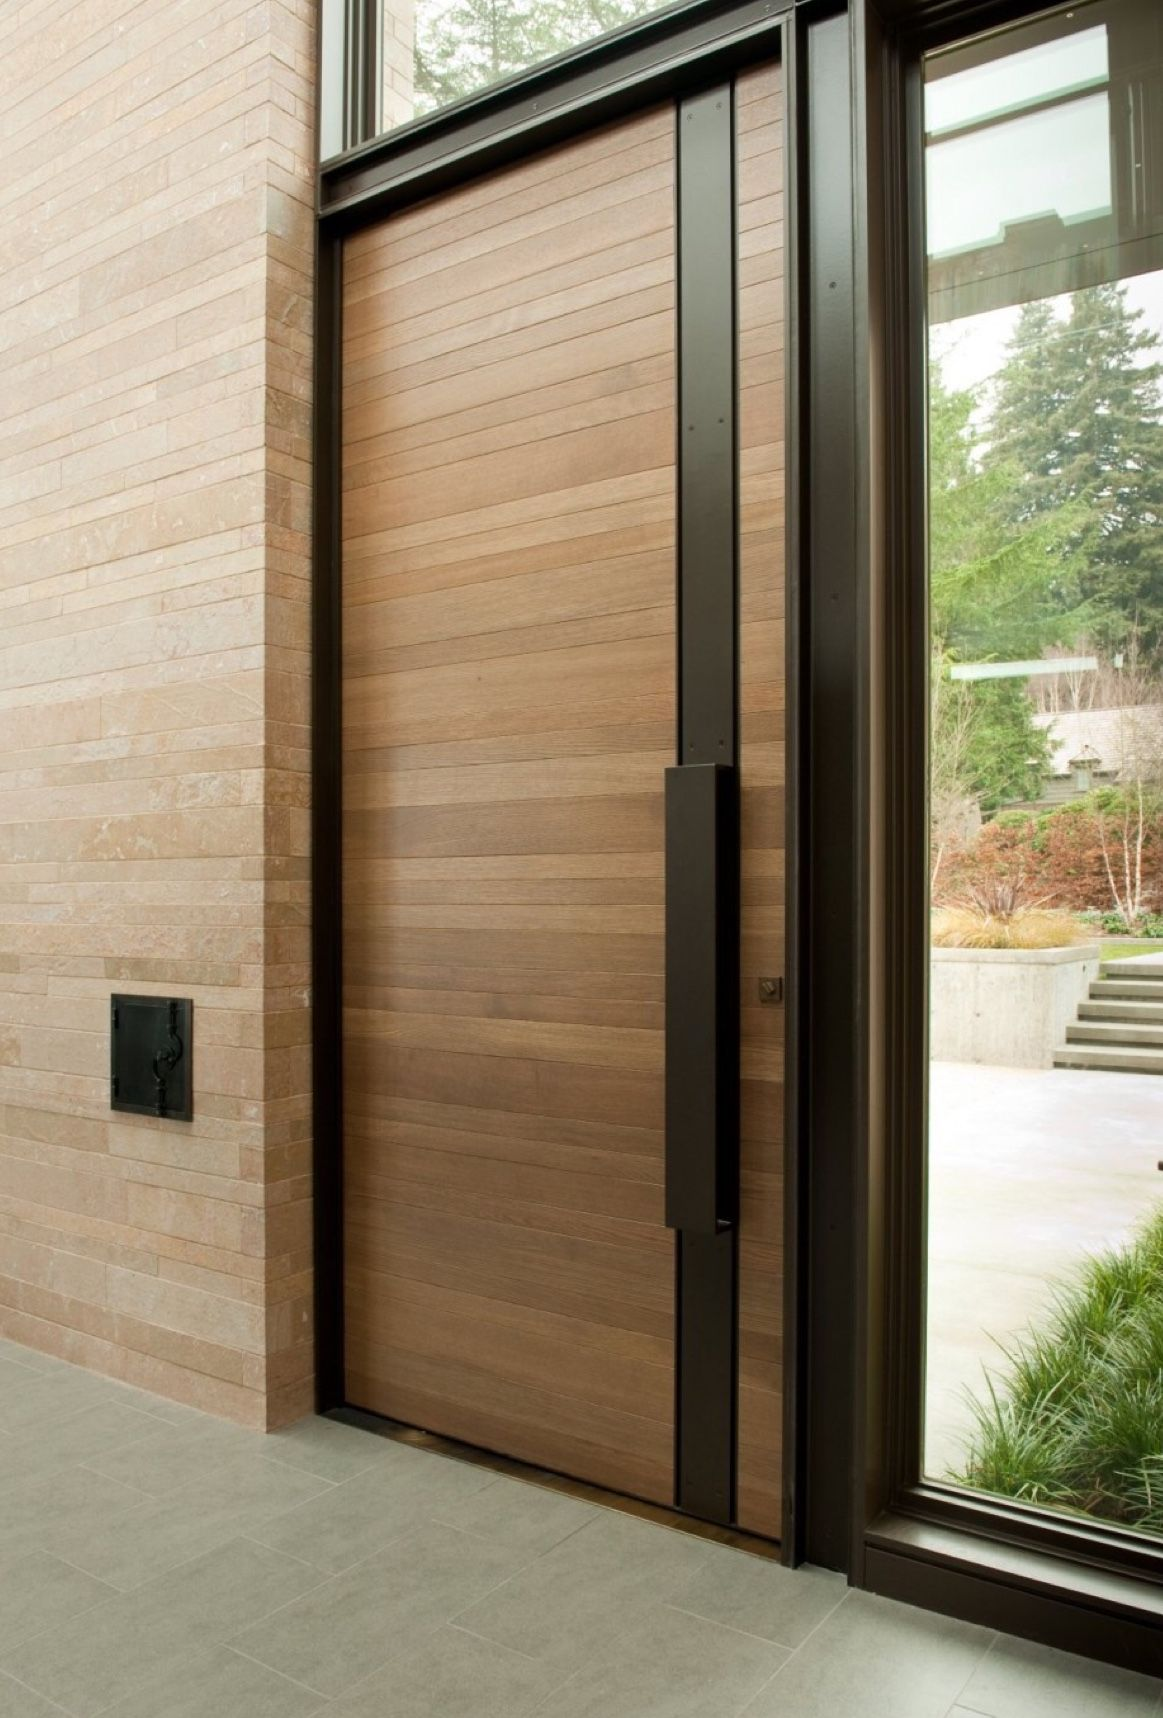 Pin By Yvonne On Biltmore Outside Door Design Modern Entrance Door Design Contemporary Front Doors